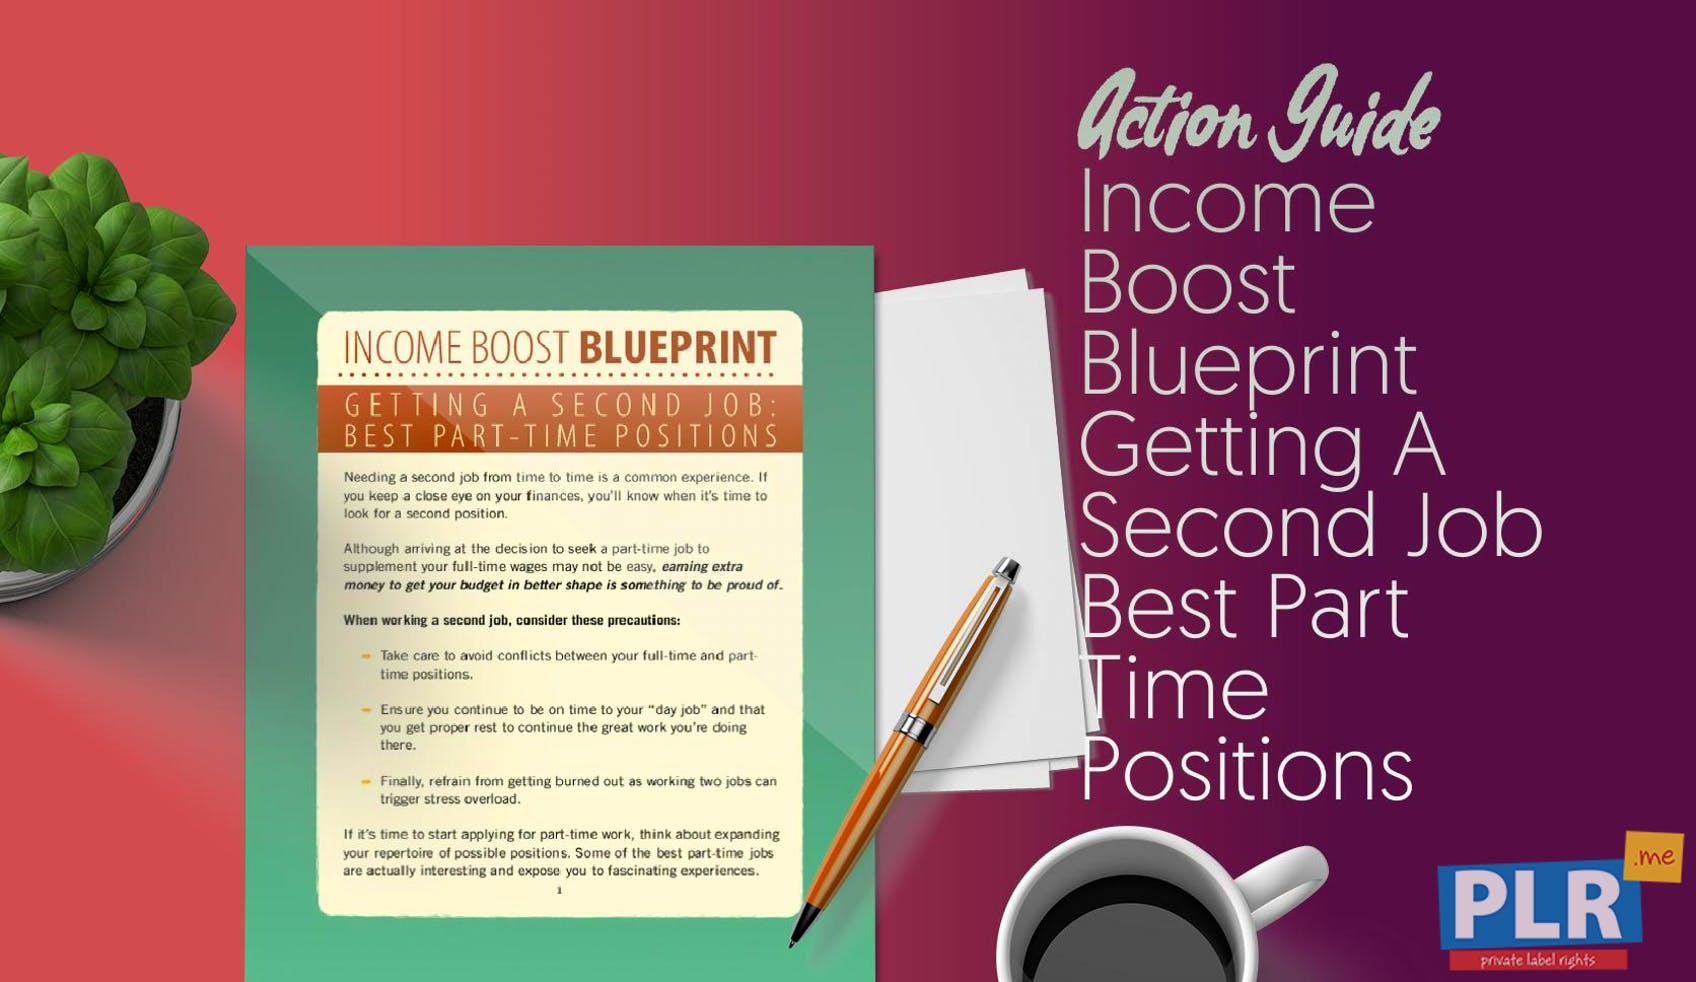 Income Boost Blueprint Getting A Second Job Best Part Time Positions